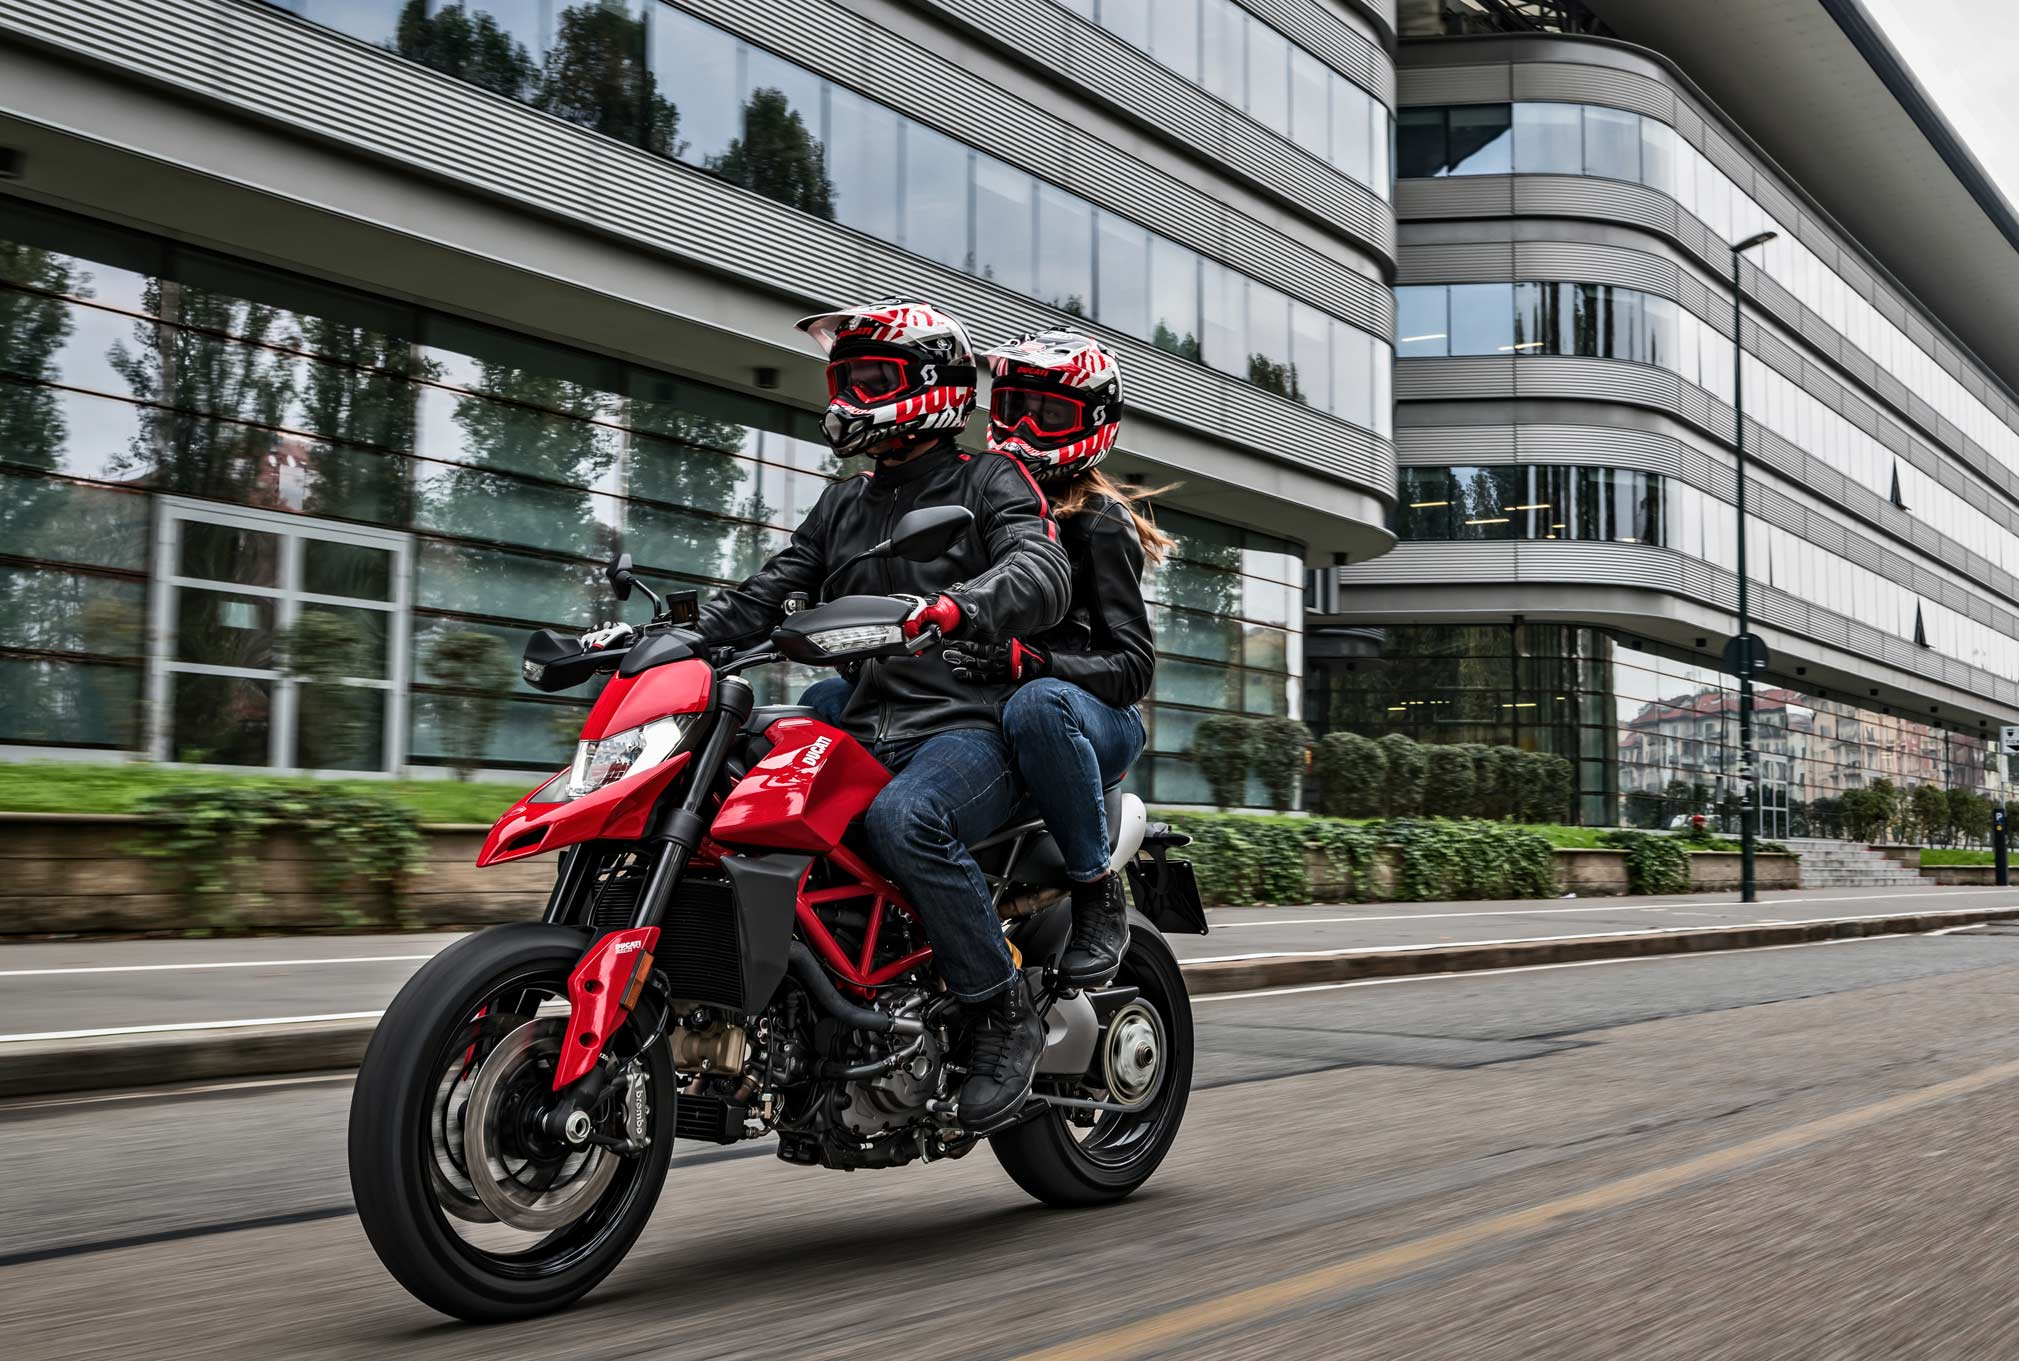 2019 Ducati Hypermotard 950 Guide Total Motorcycle